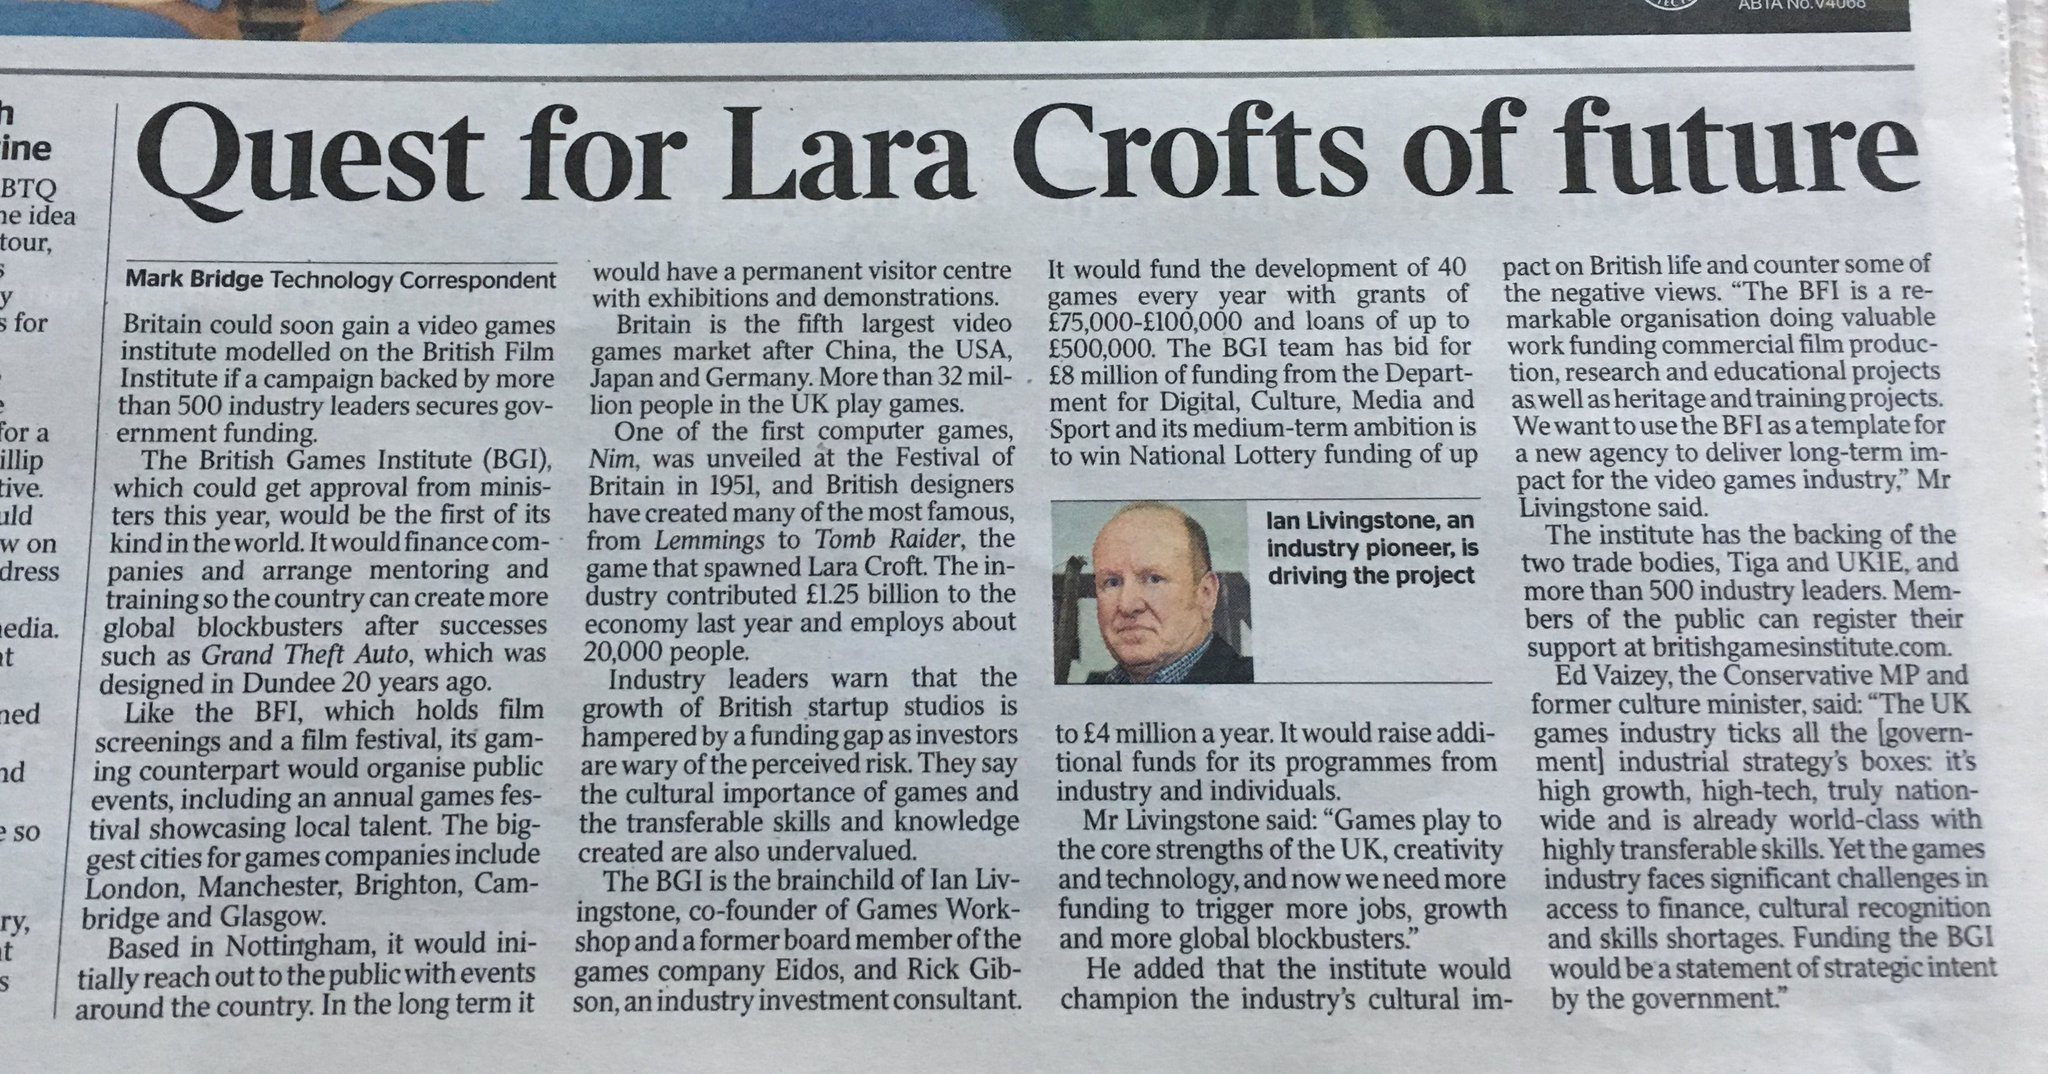 Quest for Lara Crofts of the future